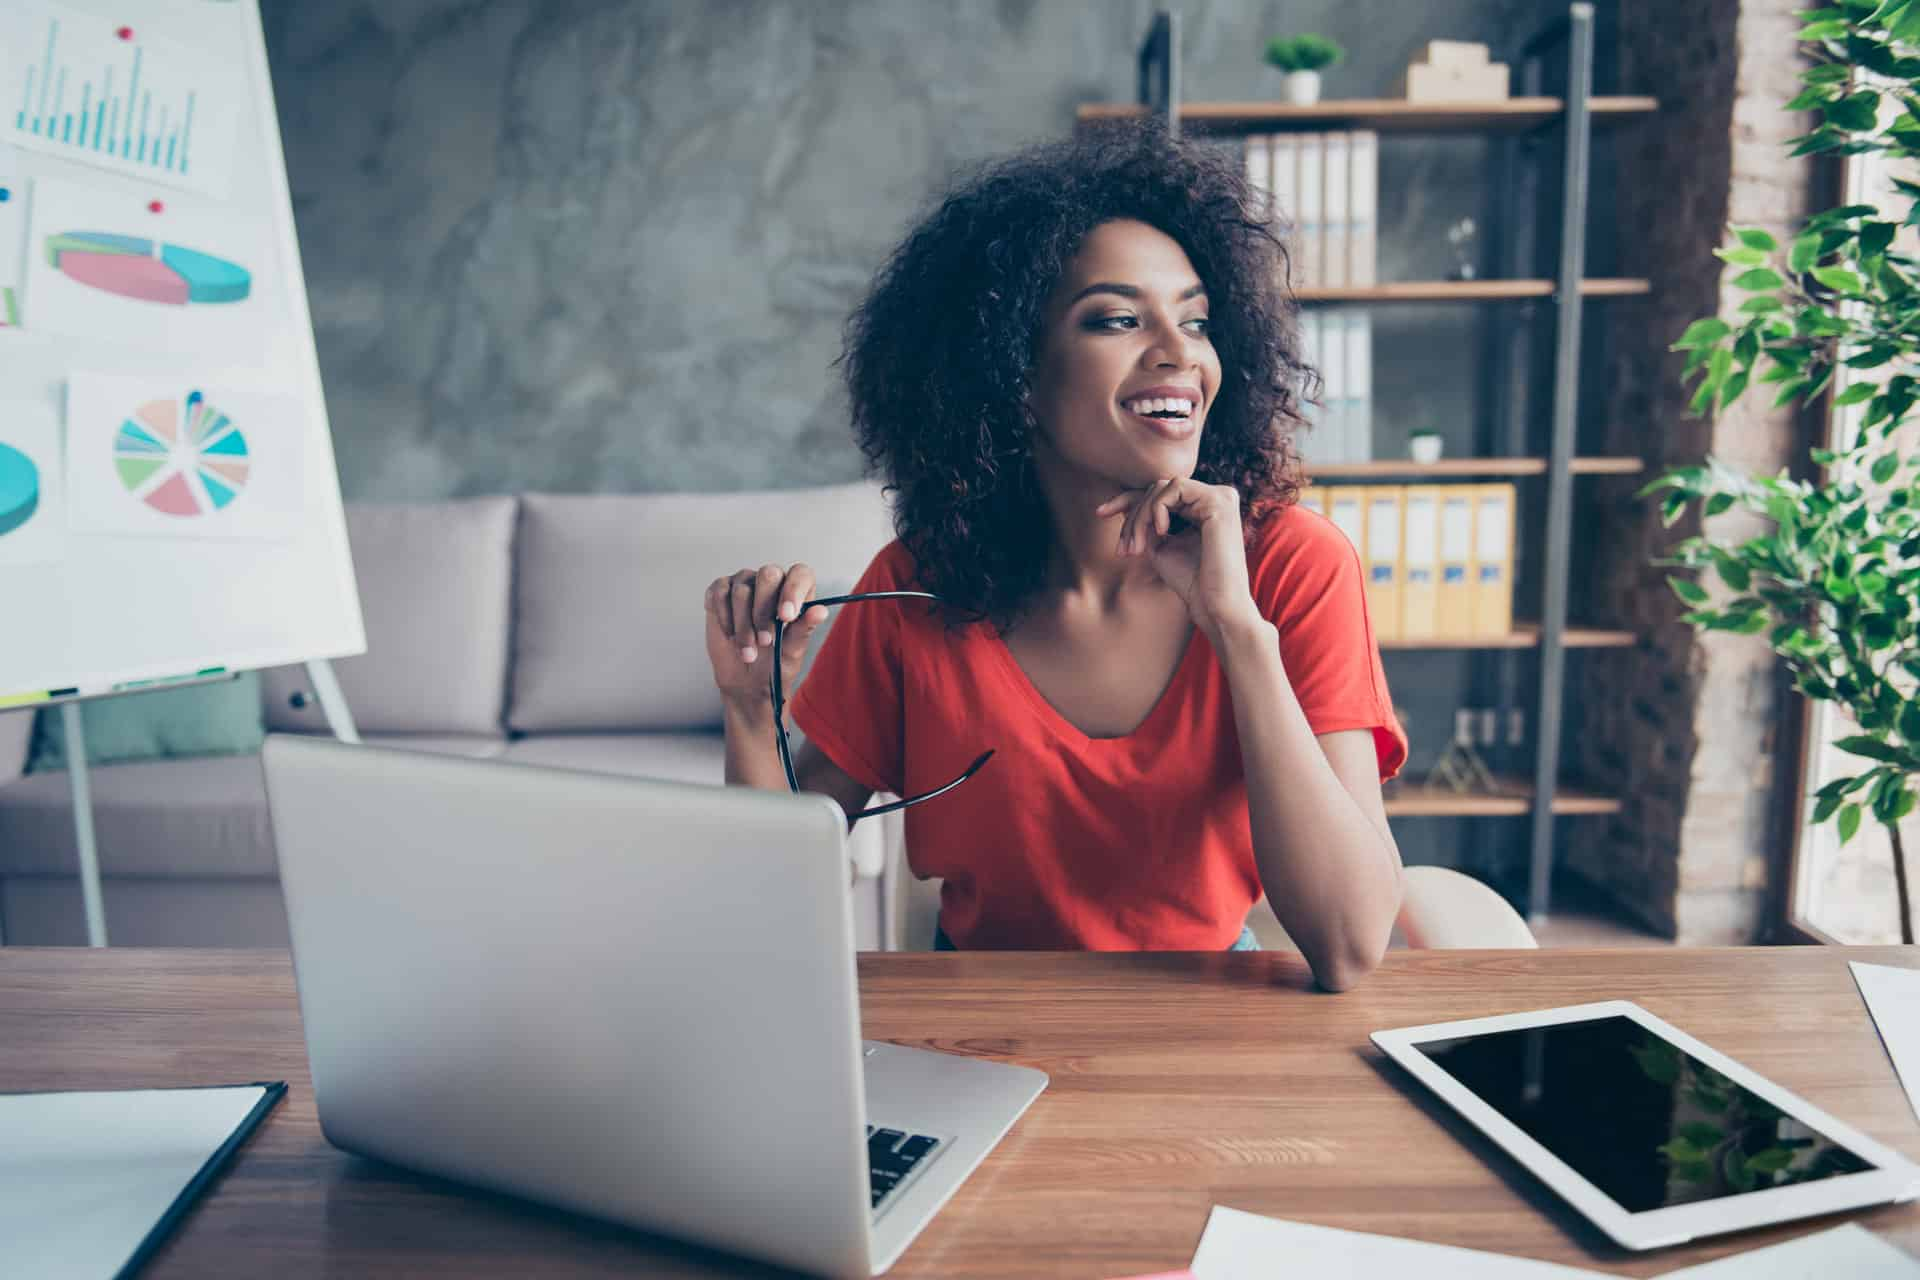 Nigerian companies led by women that you must watch out for in 2020